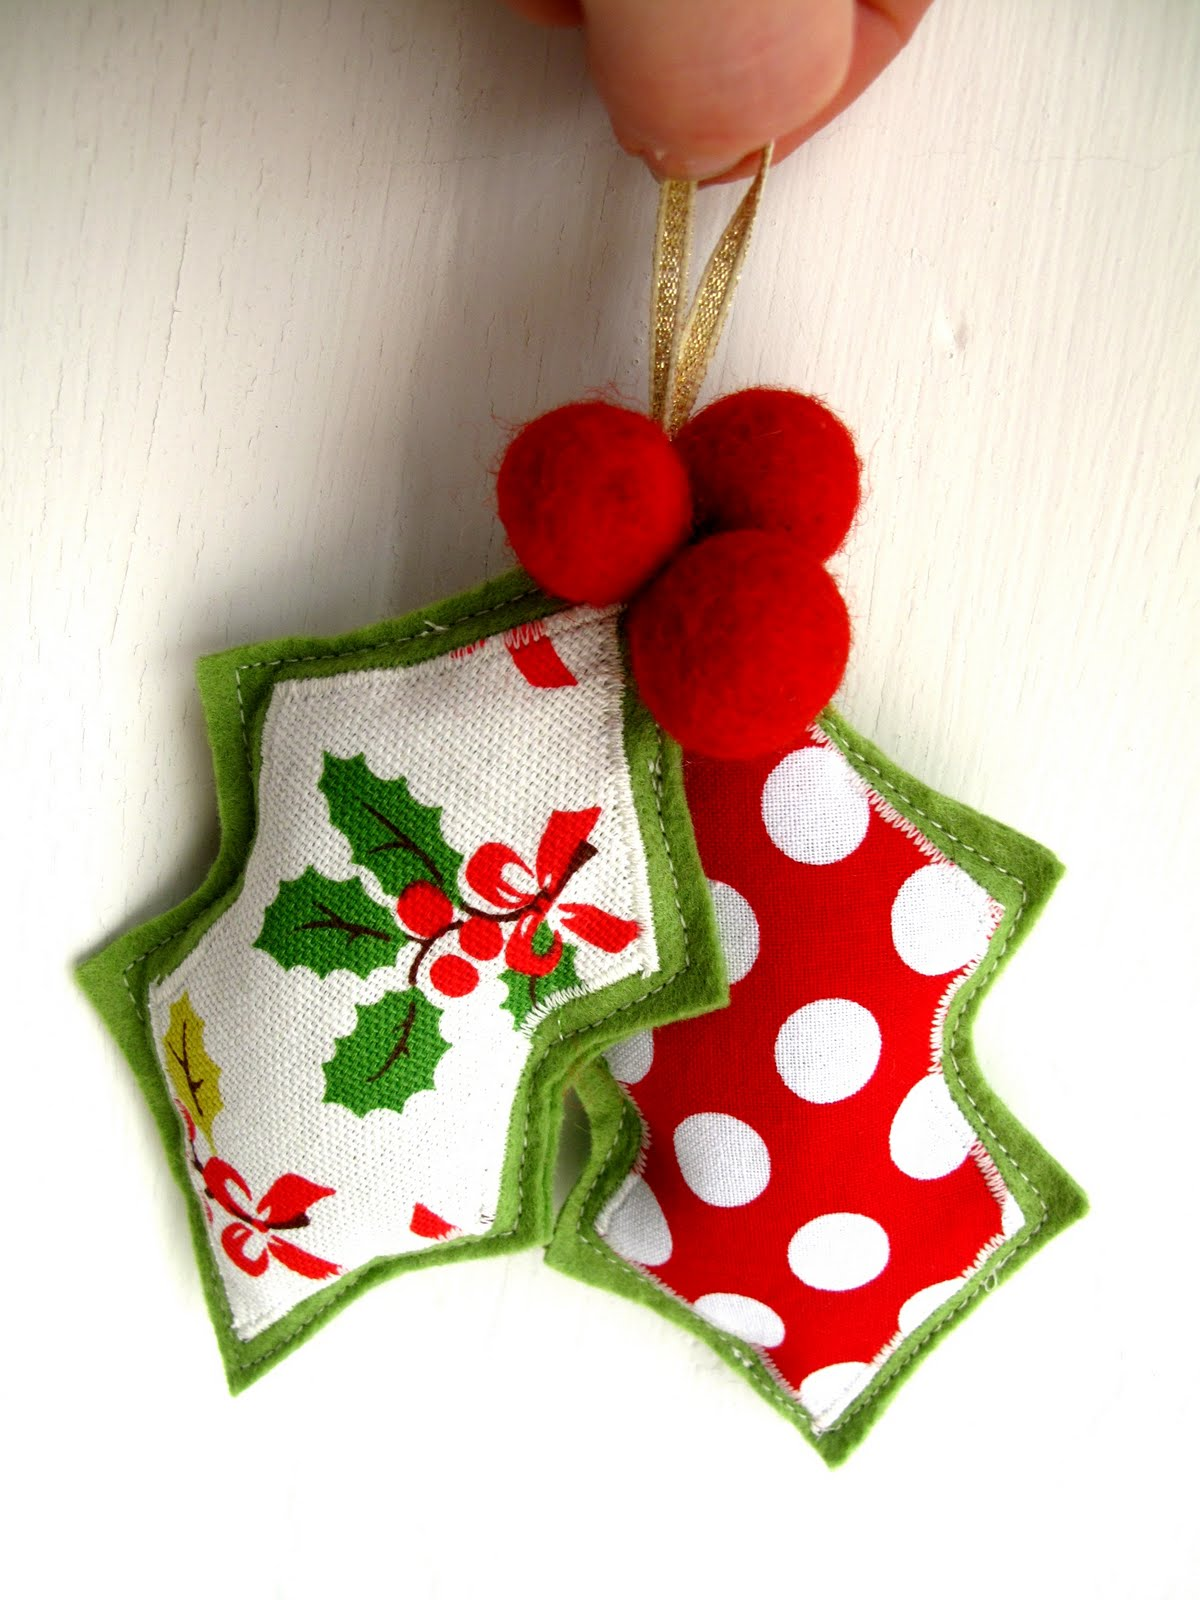 'swag' And Look Like Fat Sprigs Of Holly Hanging You Could Make  Smaller Ornaments For Your Tree Using The New Teeny Tiny Felt Balls From My  Range